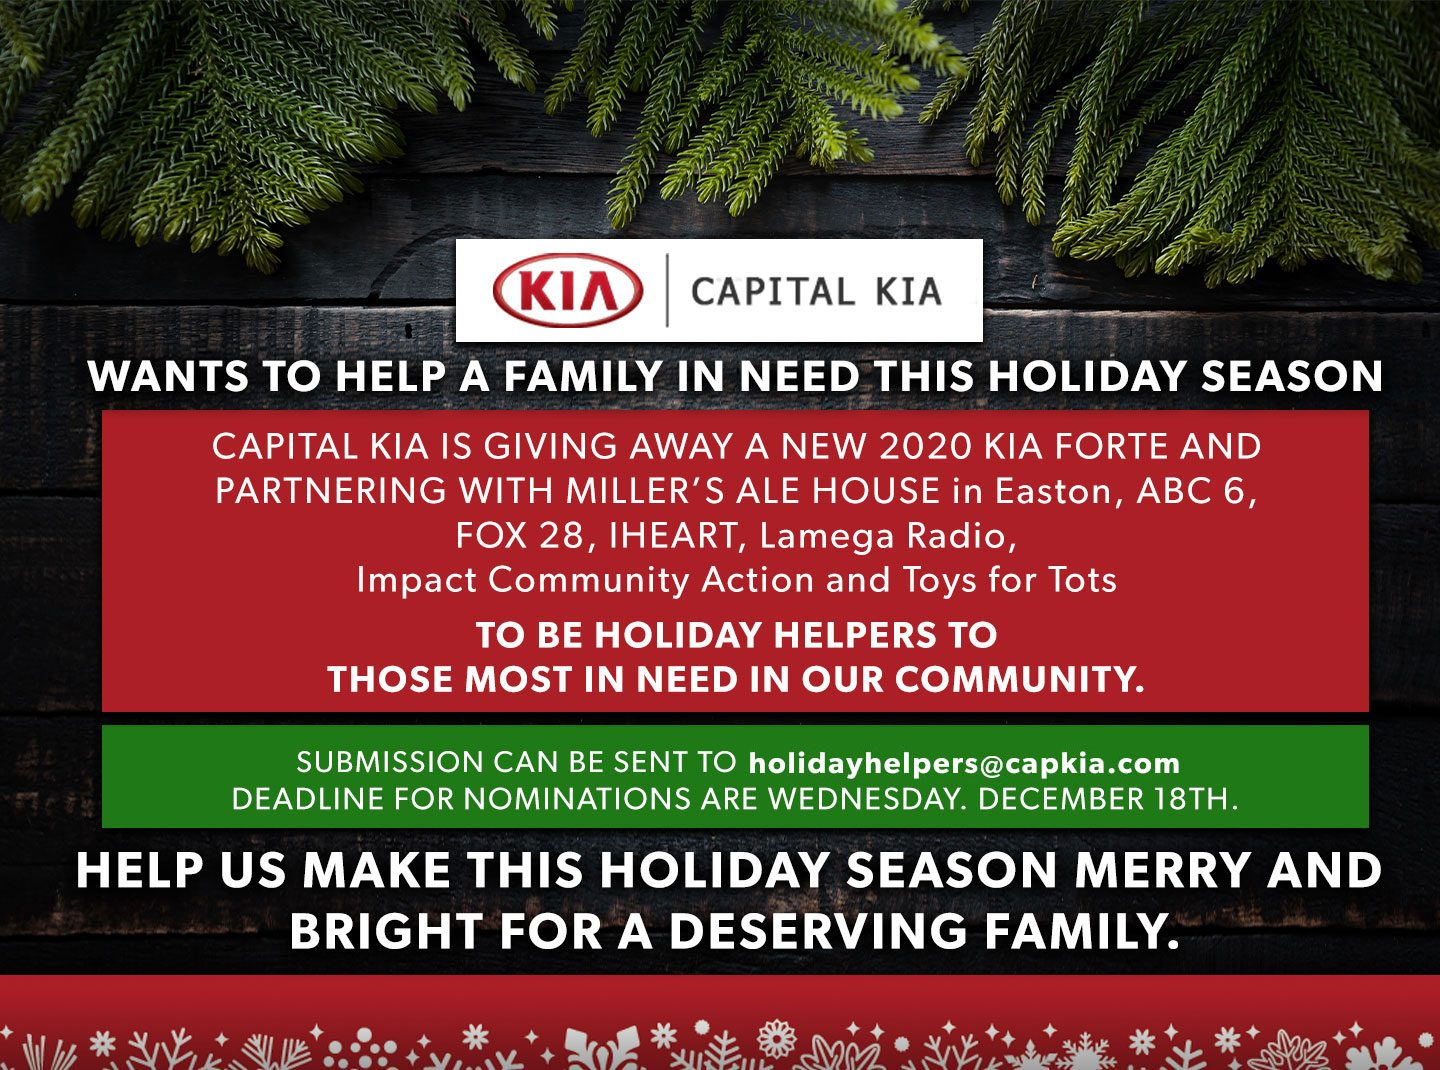 Capital Kia give away